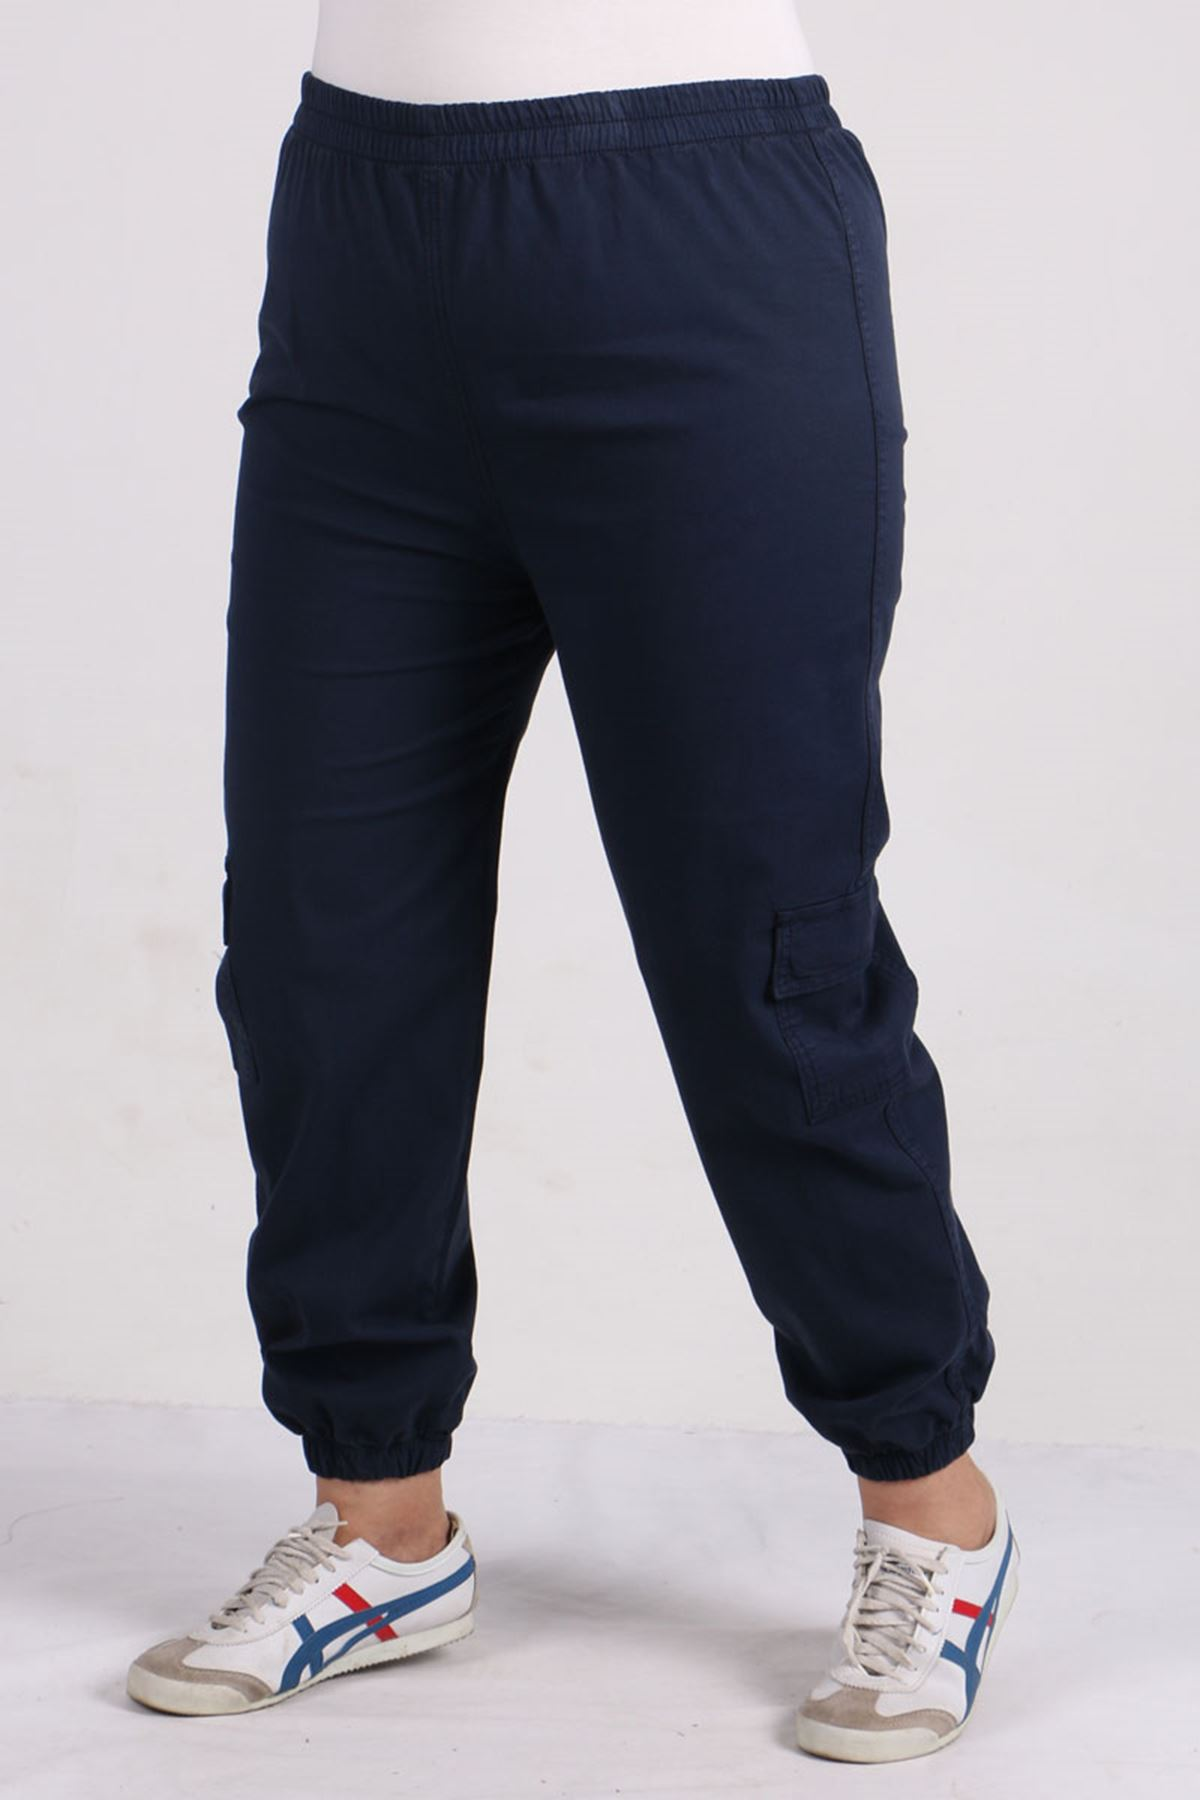 9140 Plus Size Cargo Pants with Pockets - Navy blue